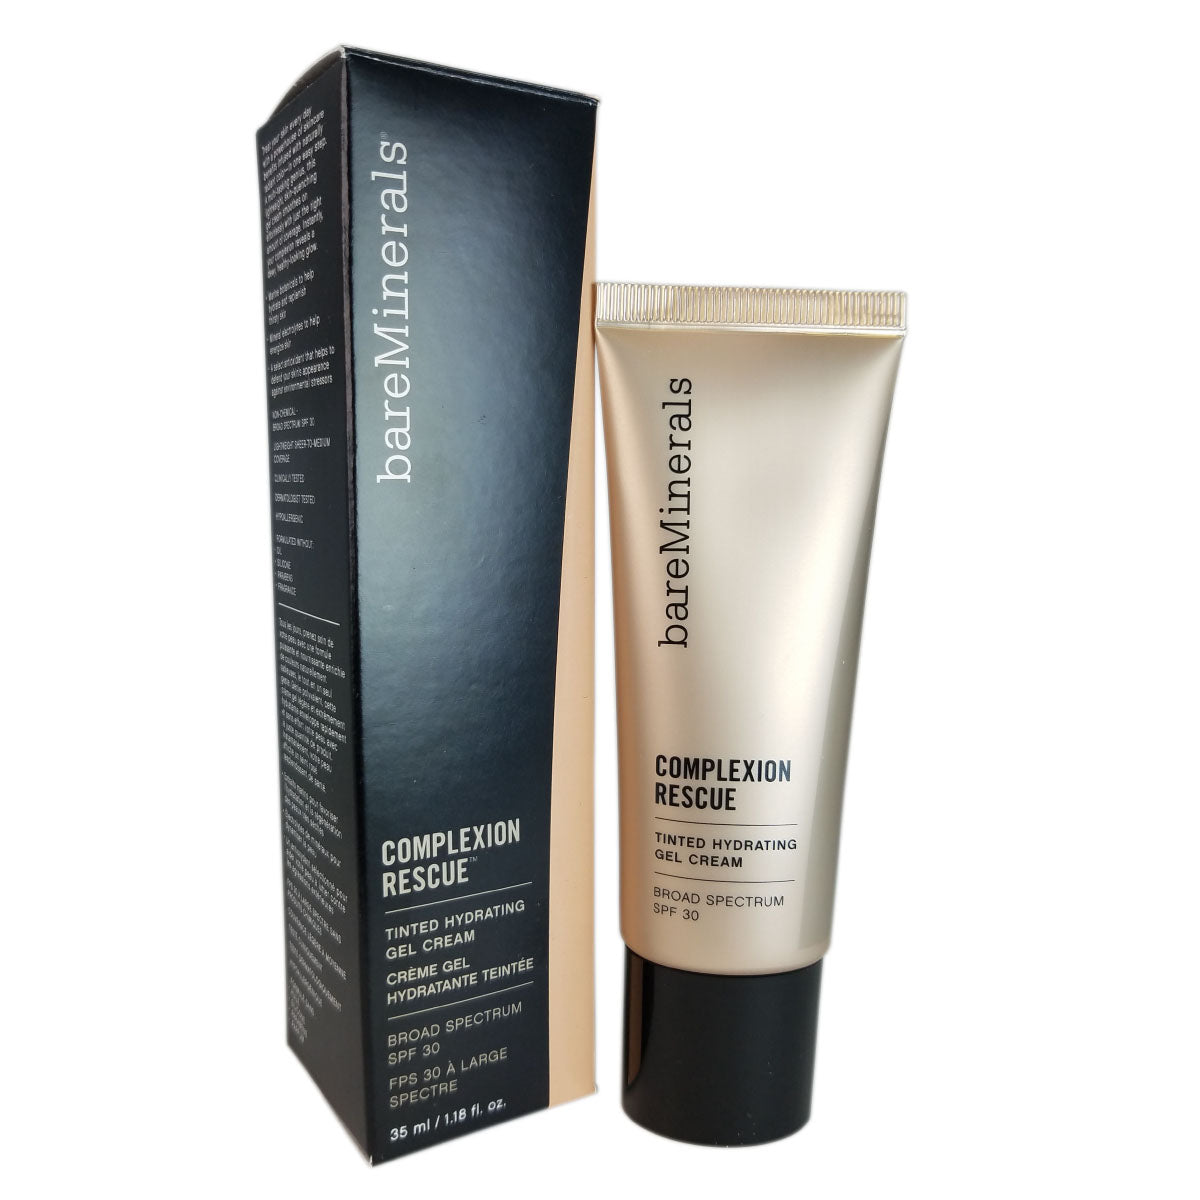 BareMinerals Complexion Rescue Tinted Hydrating Gel Cream - Suede 04 - 1.18 oz